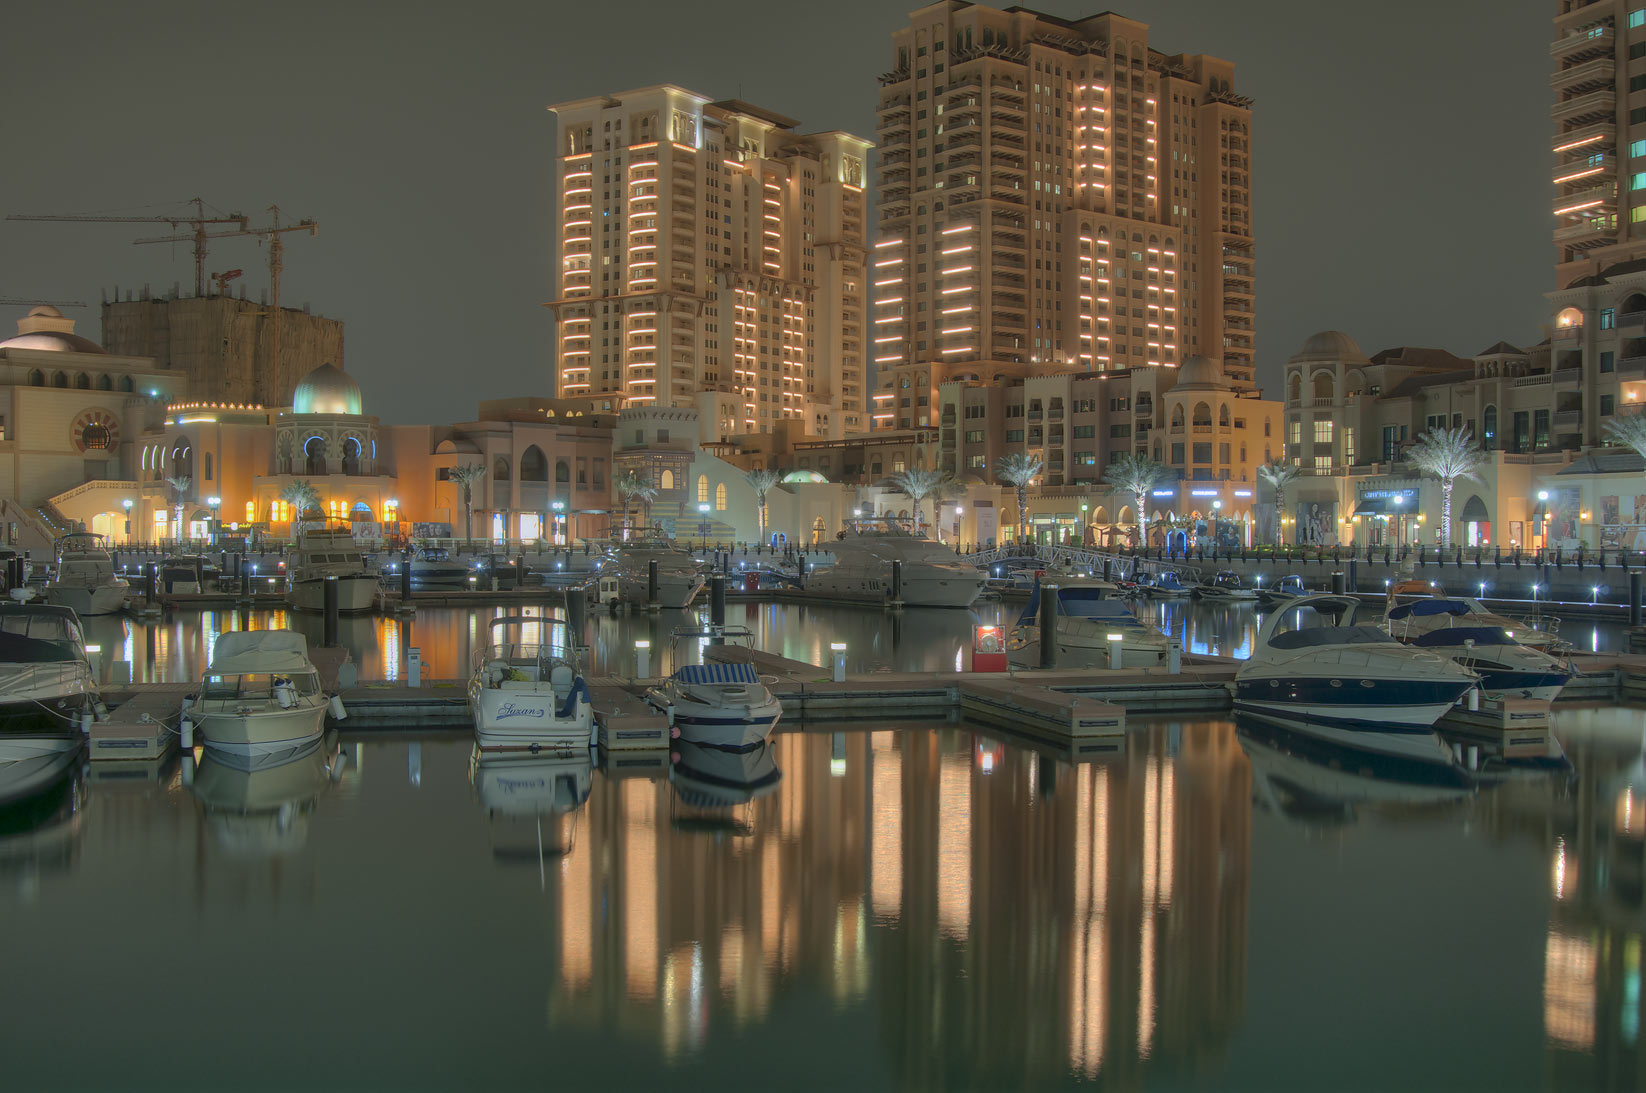 Reflections of evening lights in a harbor of...Pearl Qatar development. Doha, Qatar